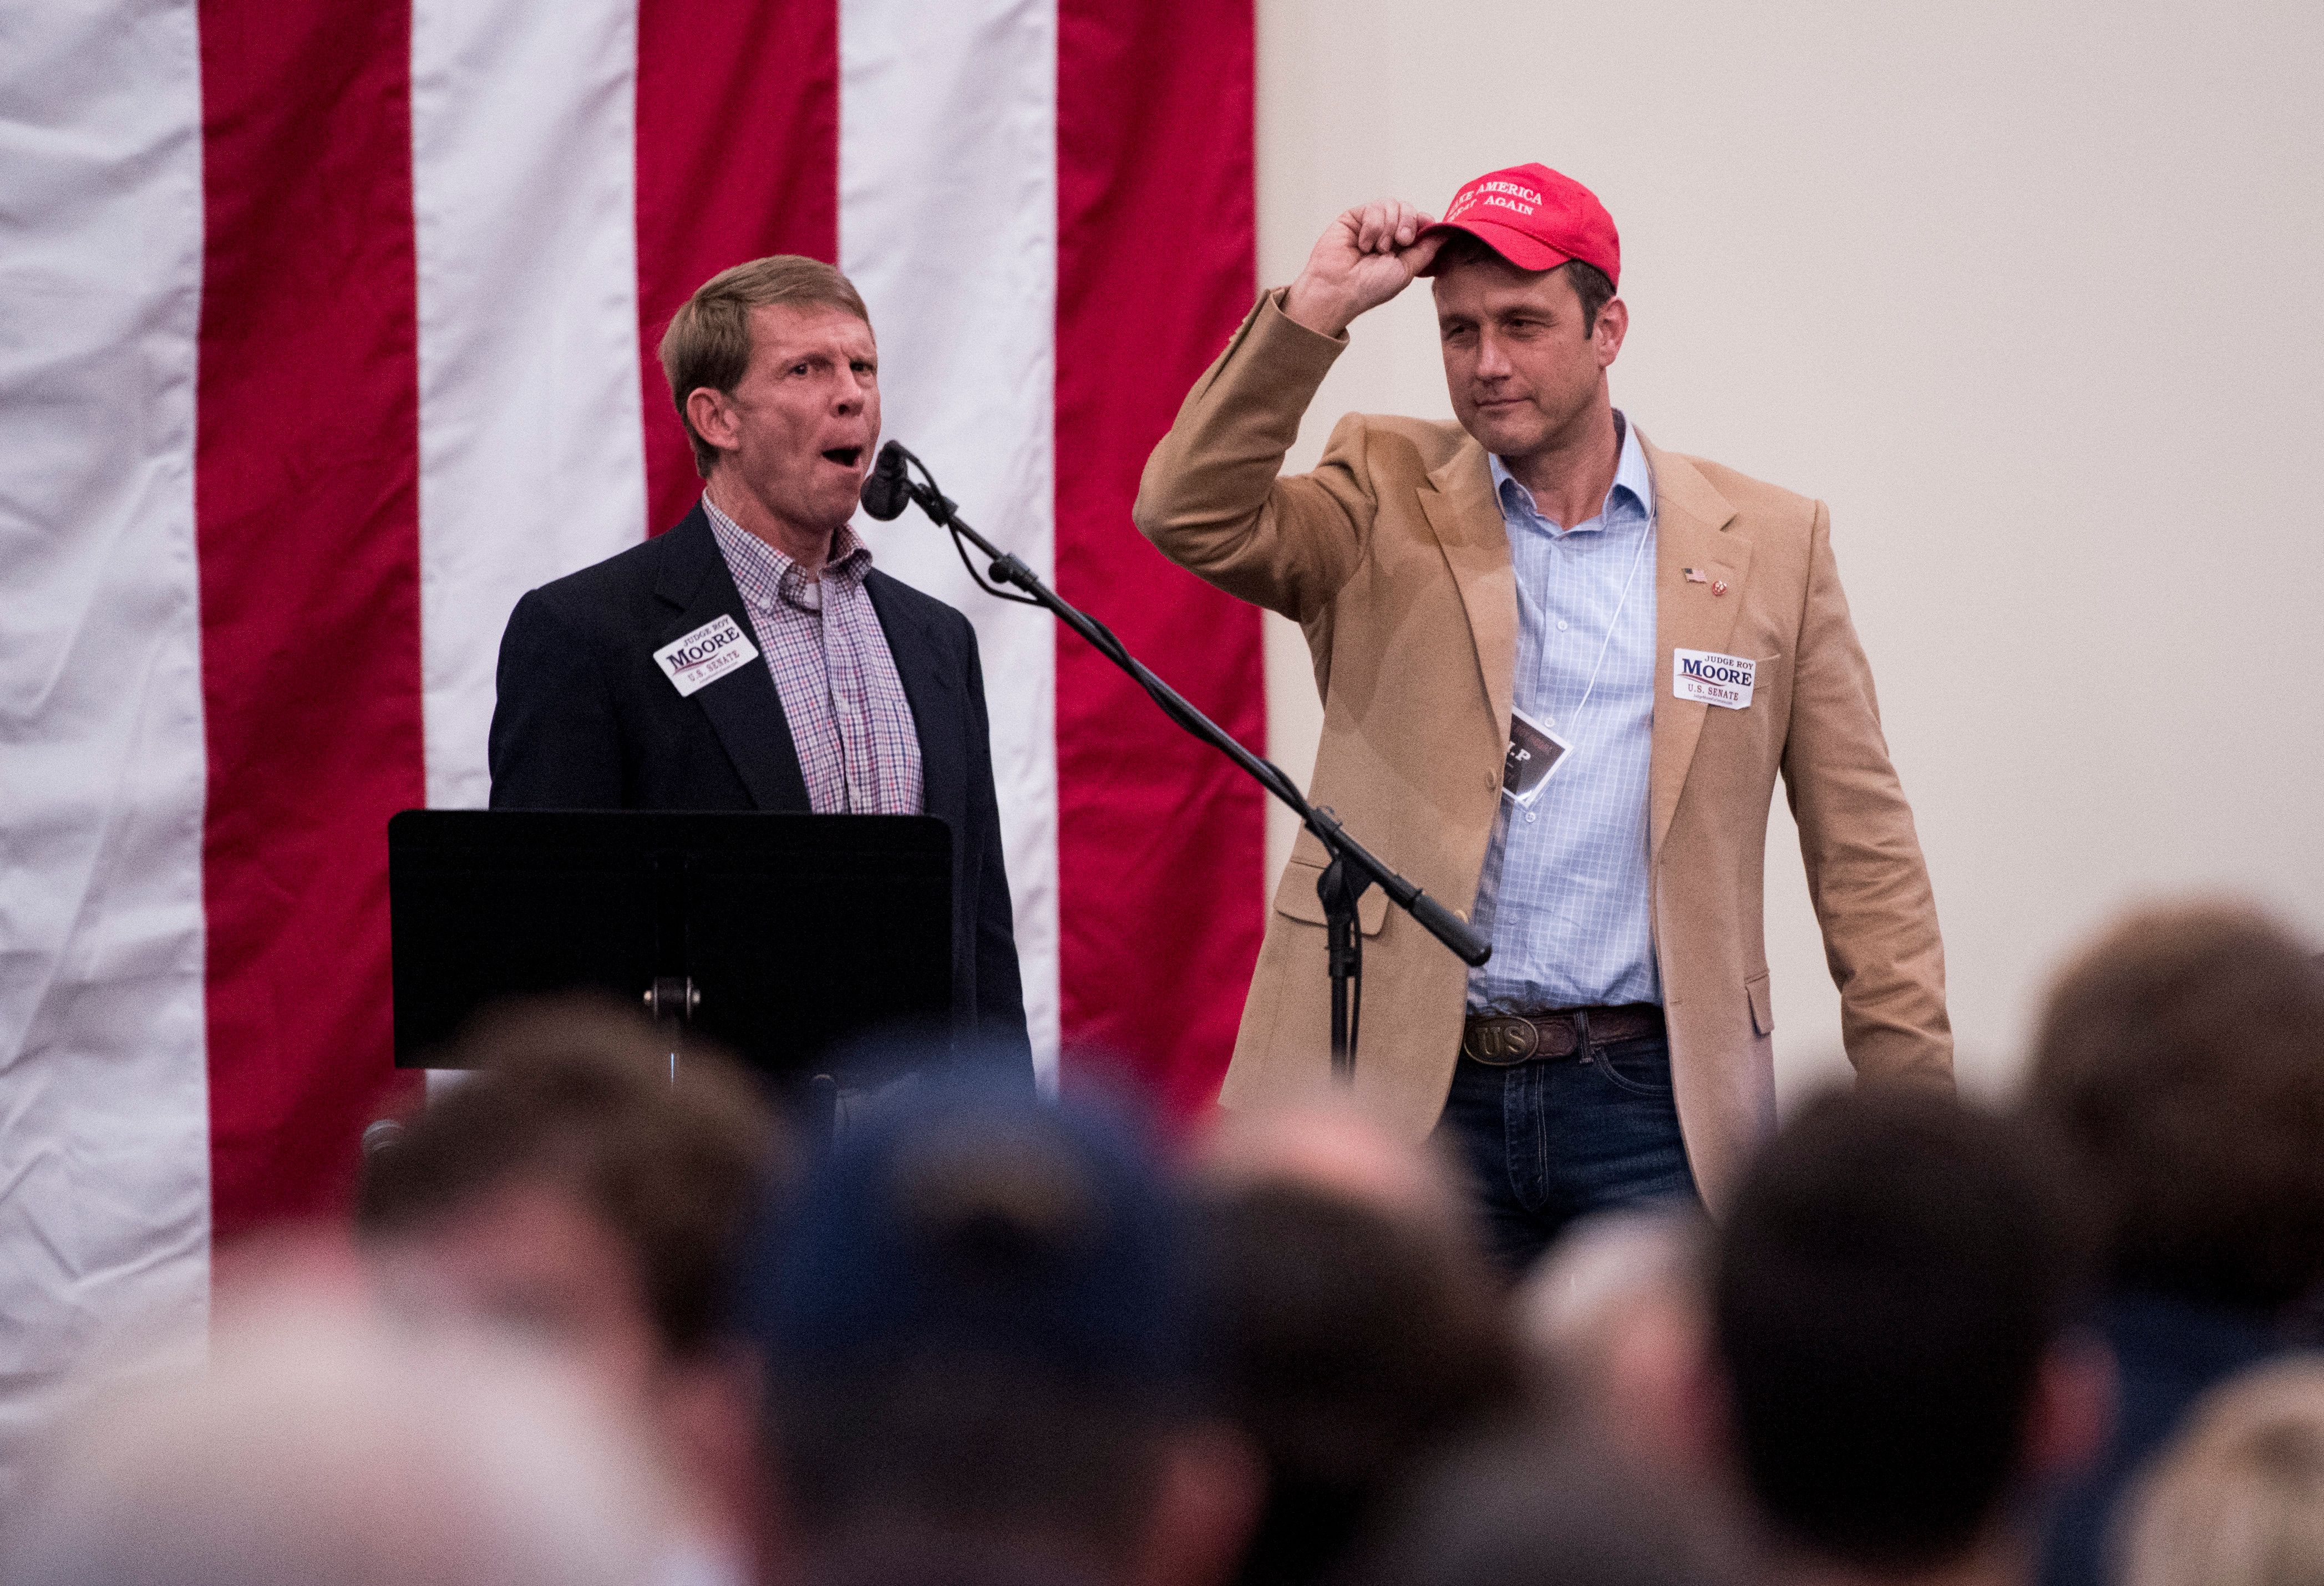 White Nationalist Paul Nehlen Loses GOP Primary For Congress In